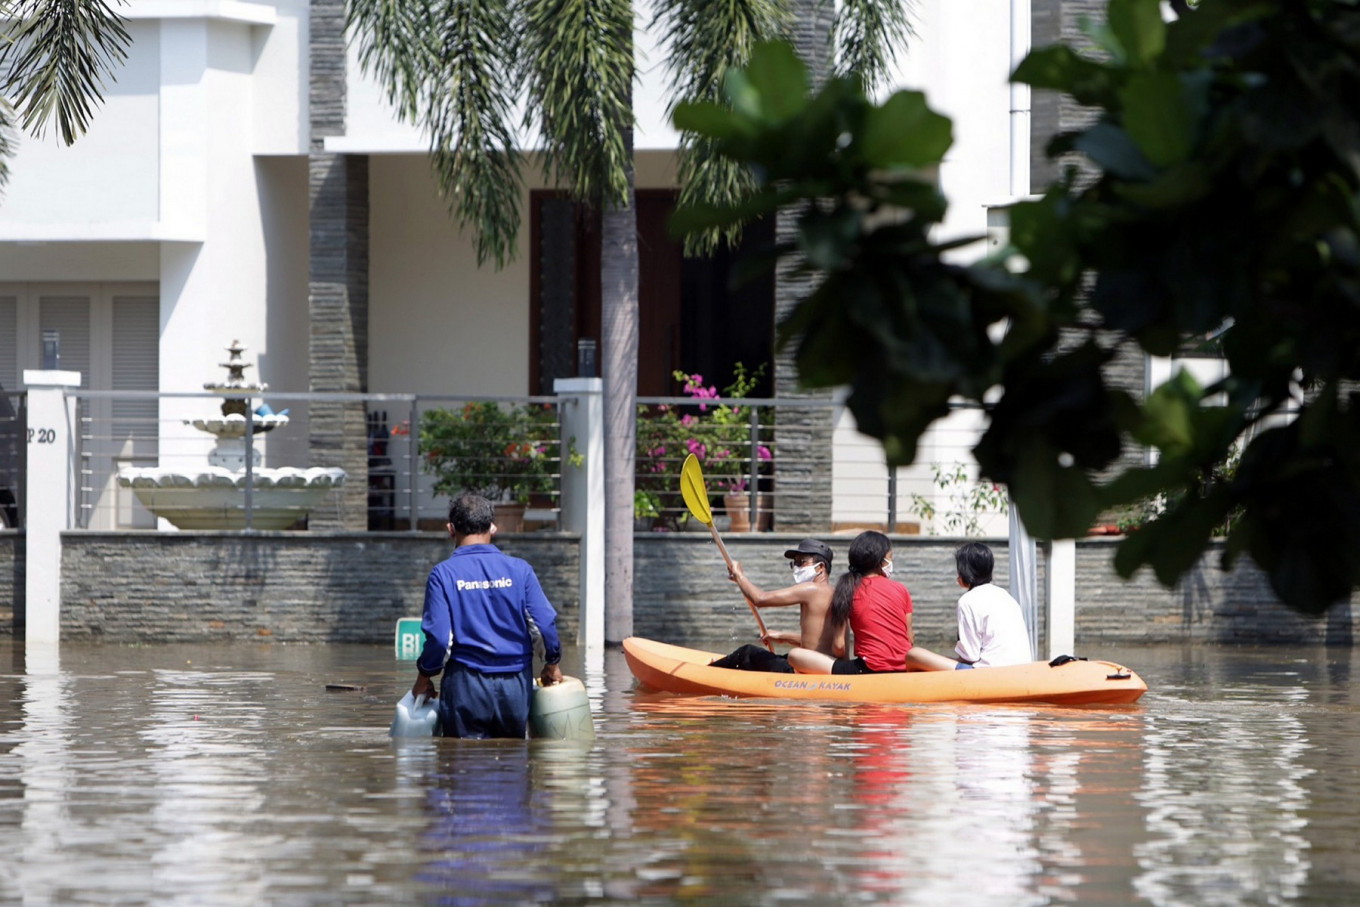 People ride a kayak around the Pantai Mutiara housing complex in North Jakarta on June 7 after a flood hit the area. The flooding began on Friday after a levee was breached, allowing sea water to inundate the area. JP/Wendra Ajistyatama